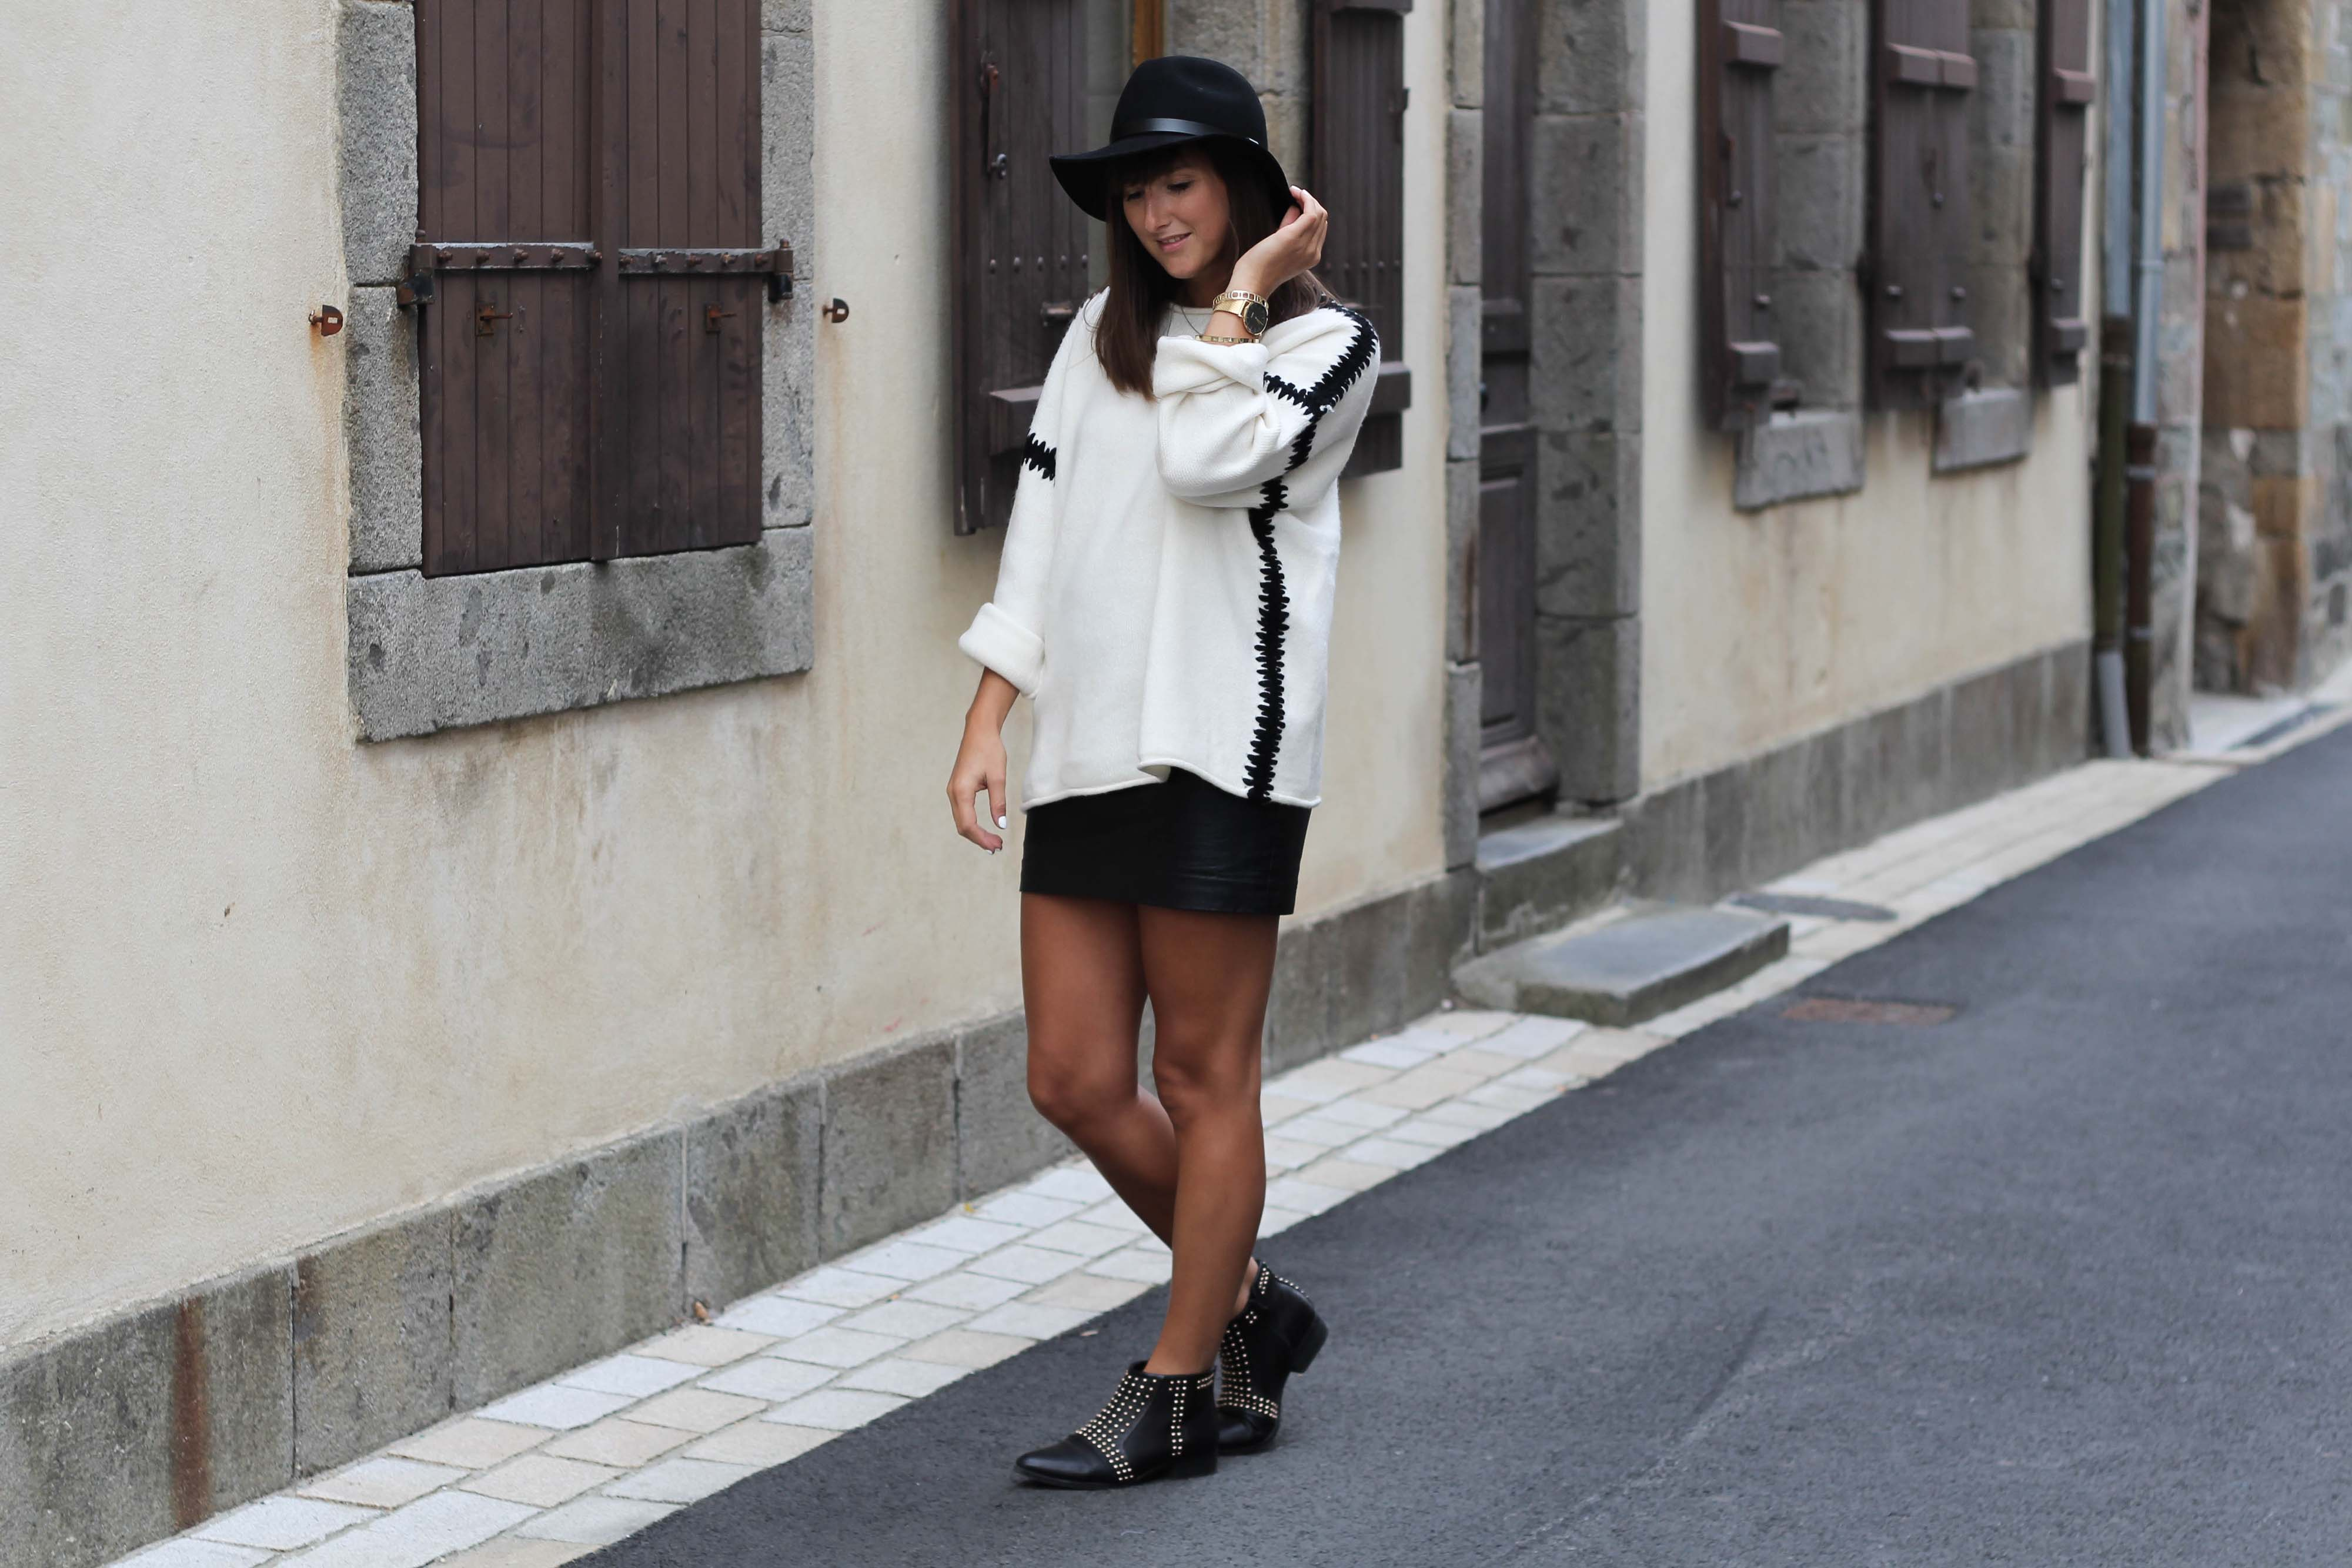 look-mode-zara-asos-autumn-simili-linstantflo-10-sur-27